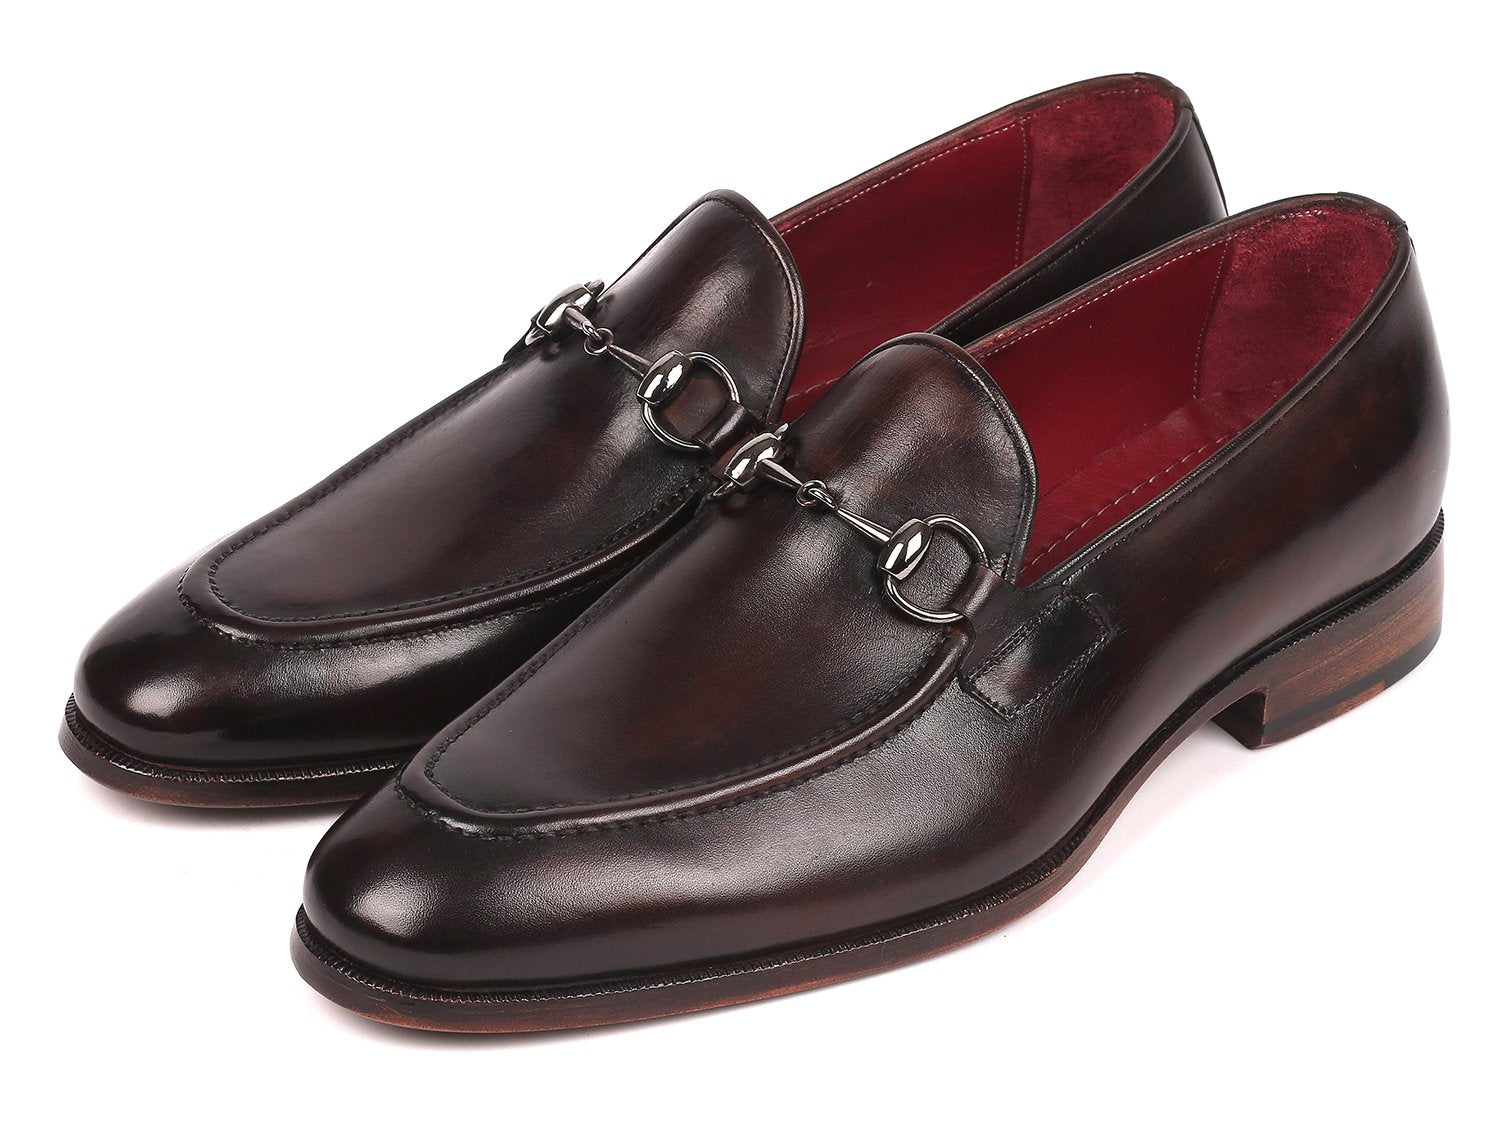 Paul Parkman Men's Horsebit Loafers Dark Brown (ID#65HB74)